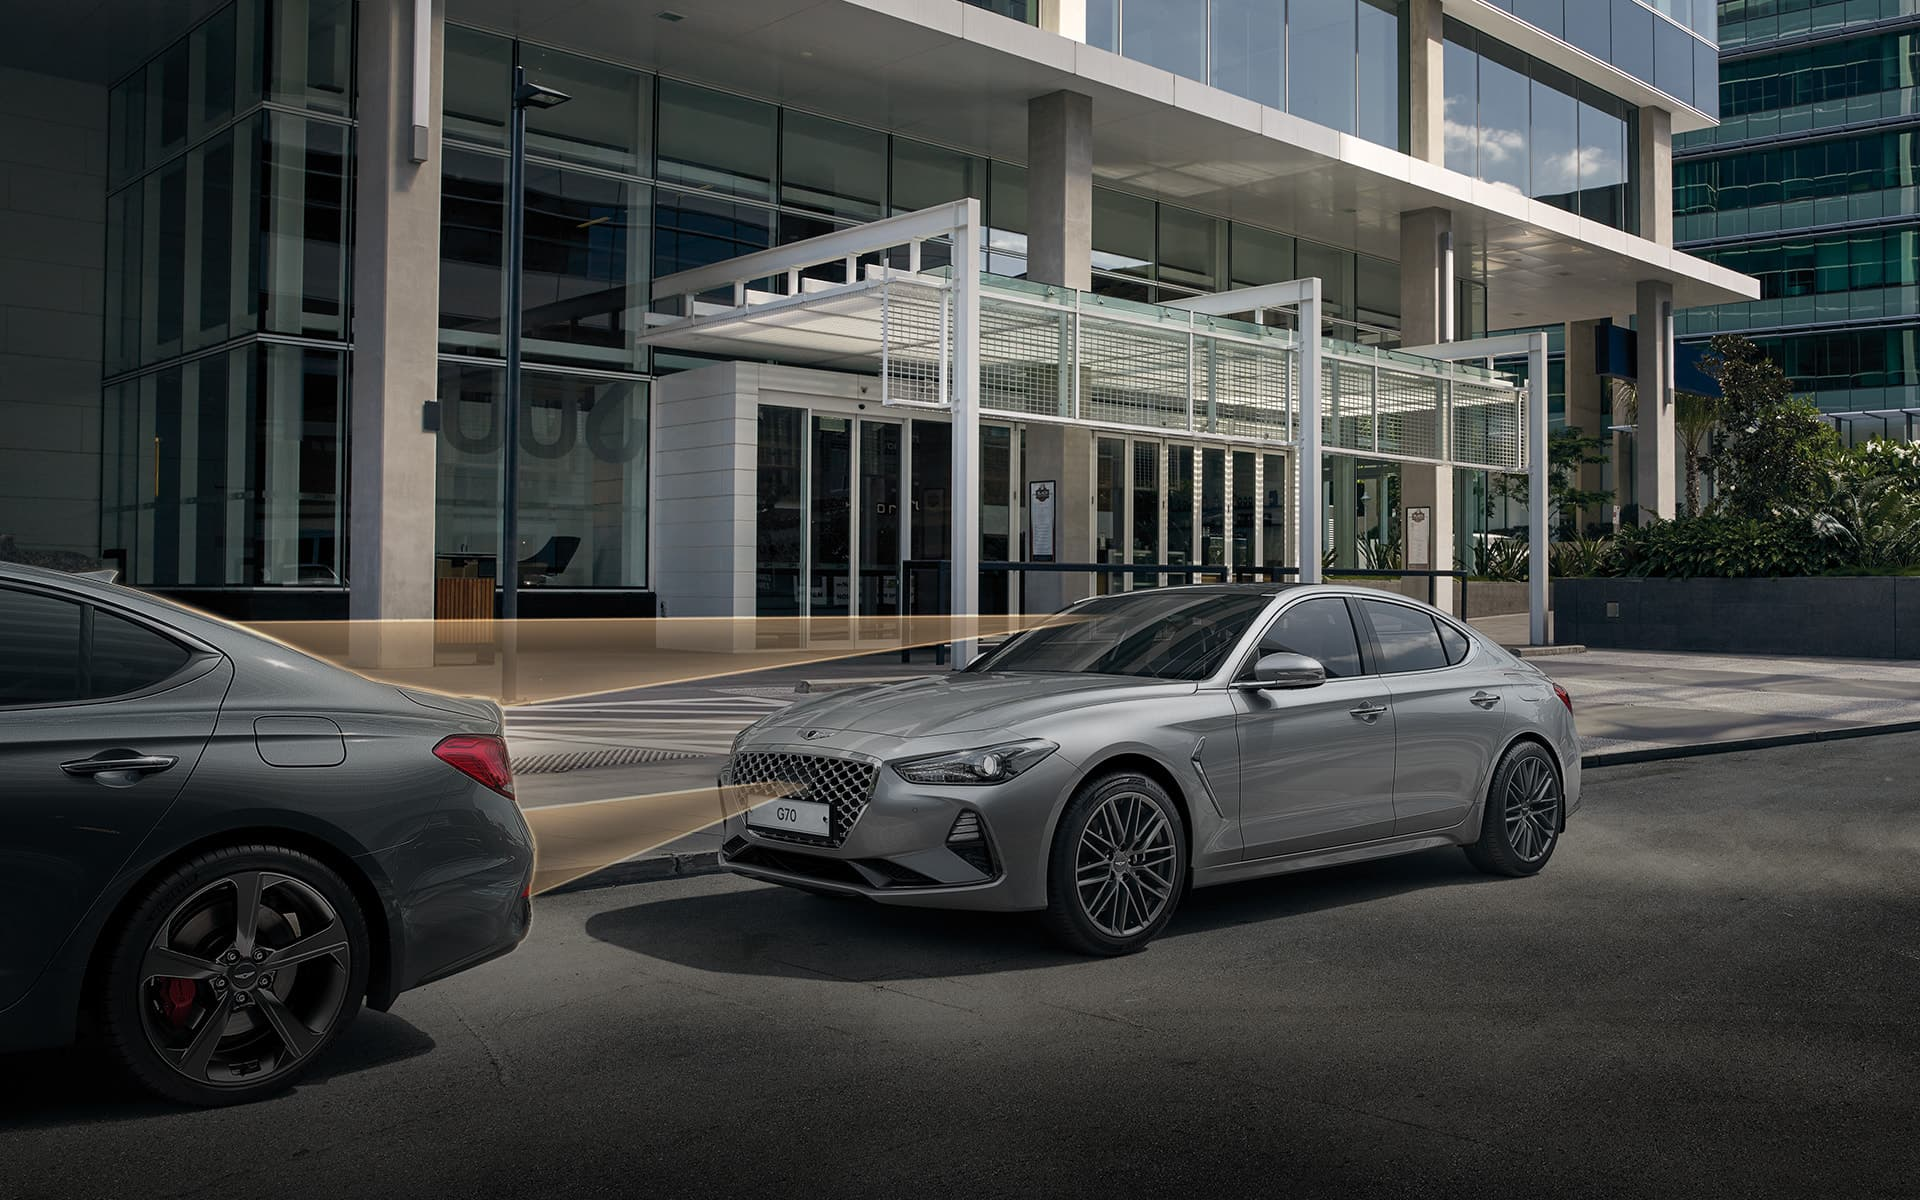 GENESIS G70 Safety Features - 전방 충돌방지 보조